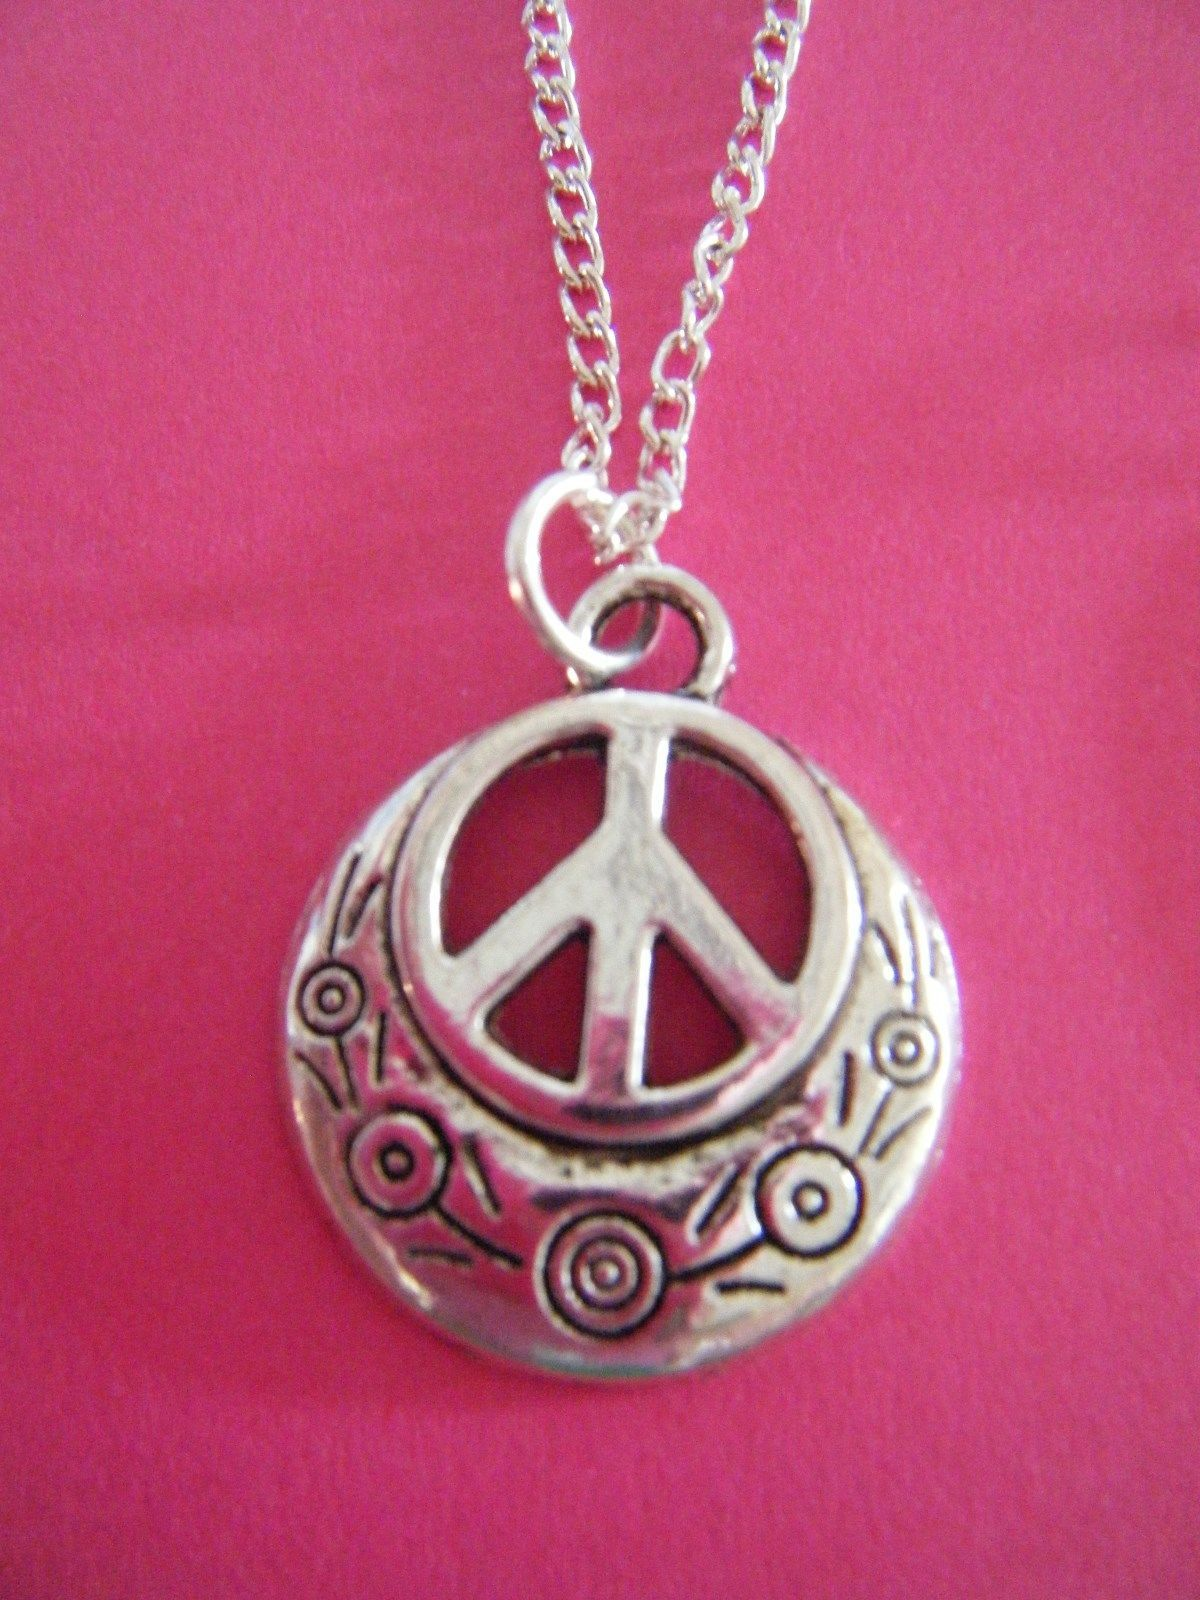 Free gift antiqued silver hippie peace sign pendant chain necklace free gift antiqued silver hippie peace sign pendant chain necklace ebay mozeypictures Image collections